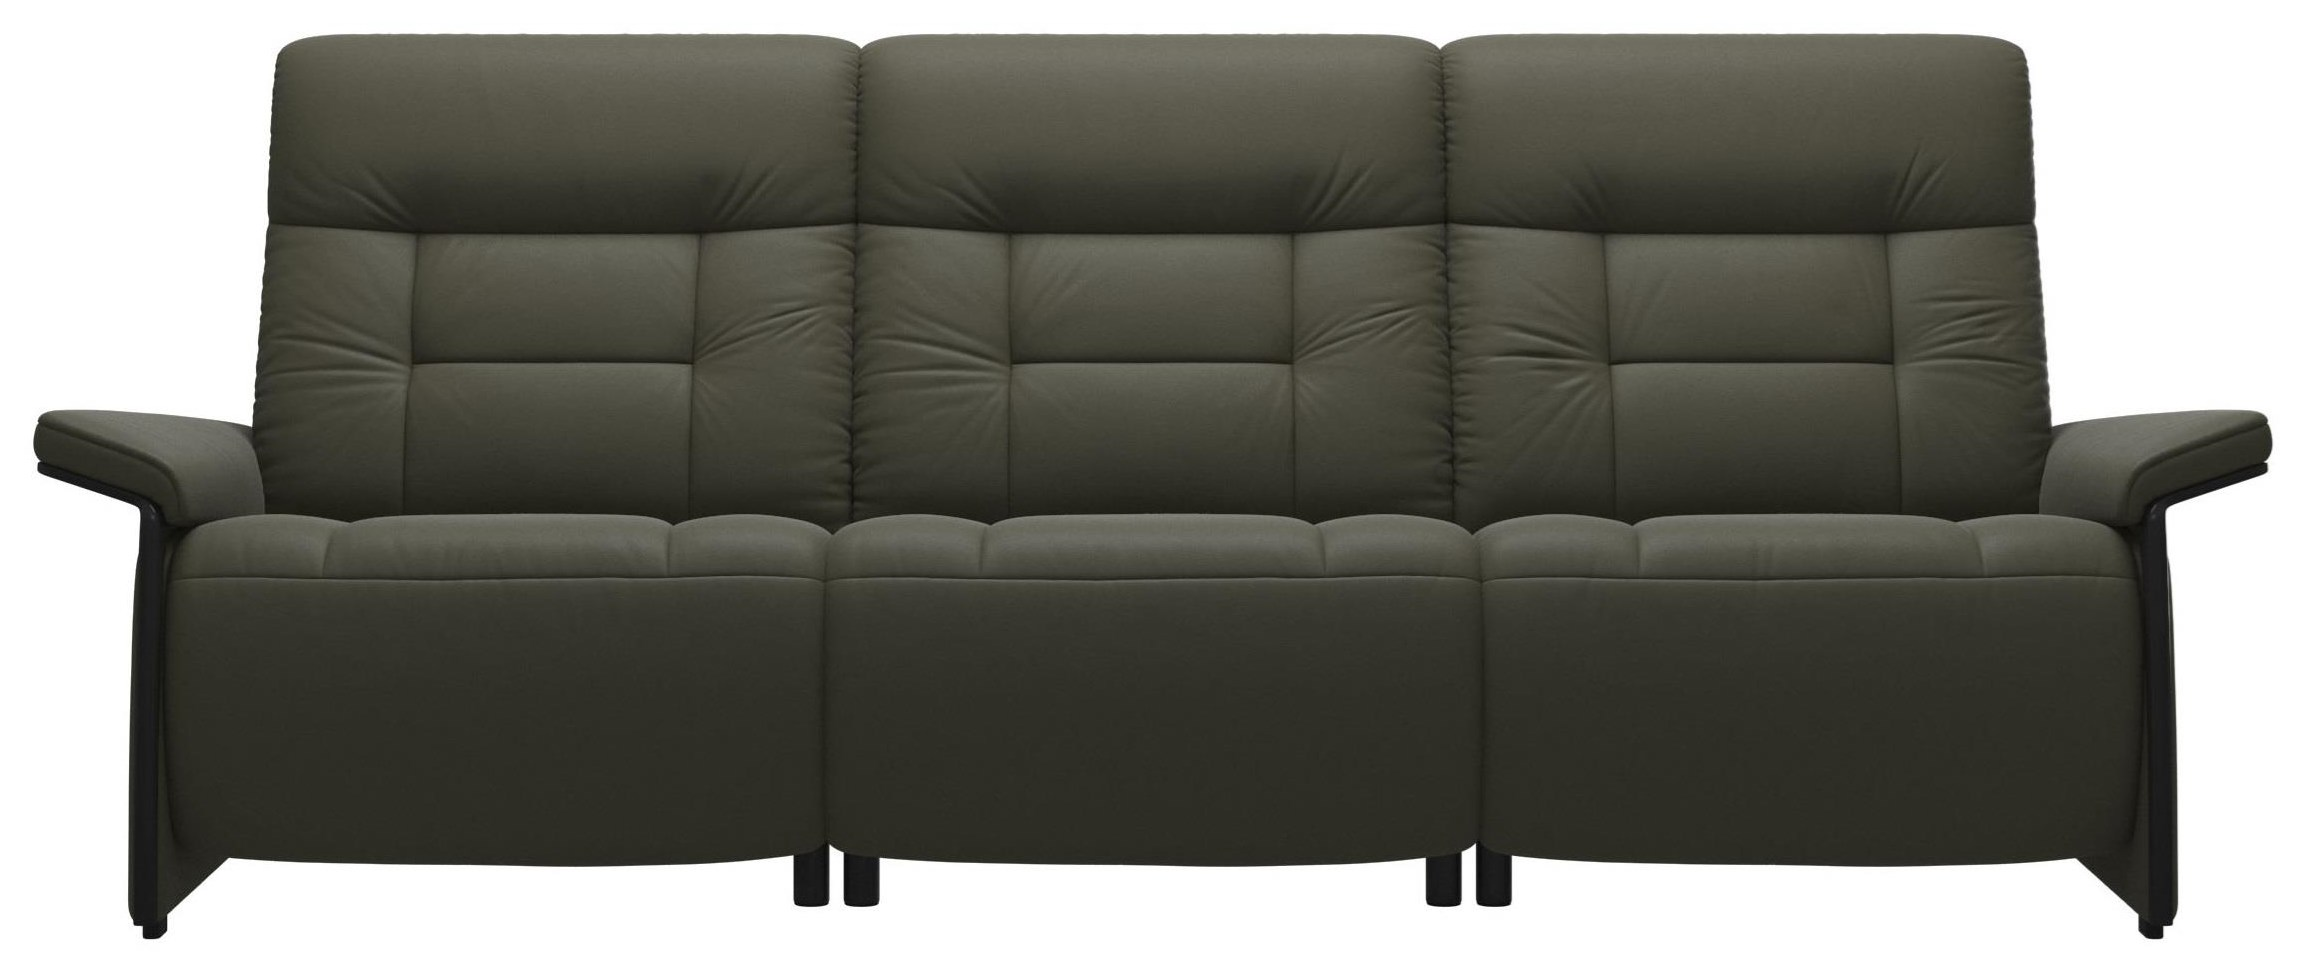 Mary Reclining 3 Seat Power Sofa by Stressless at Bennett's Furniture and Mattresses